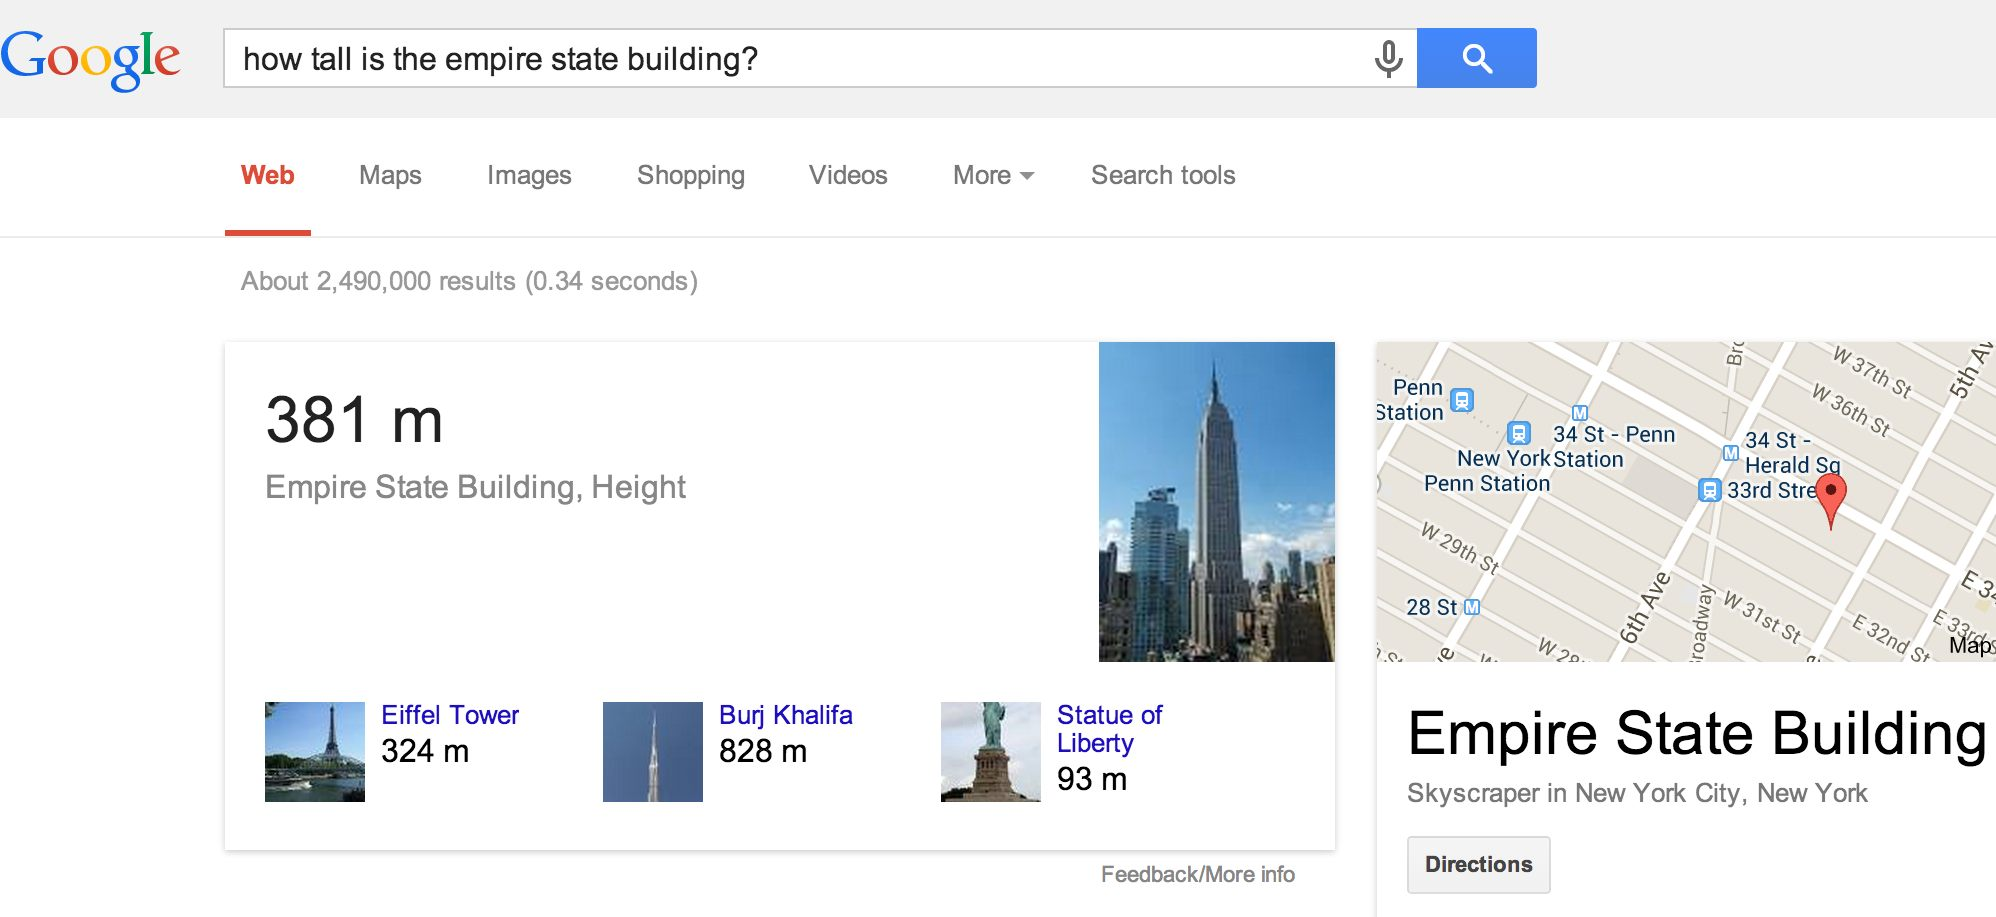 Google Hummingbird: Knowledge Graph